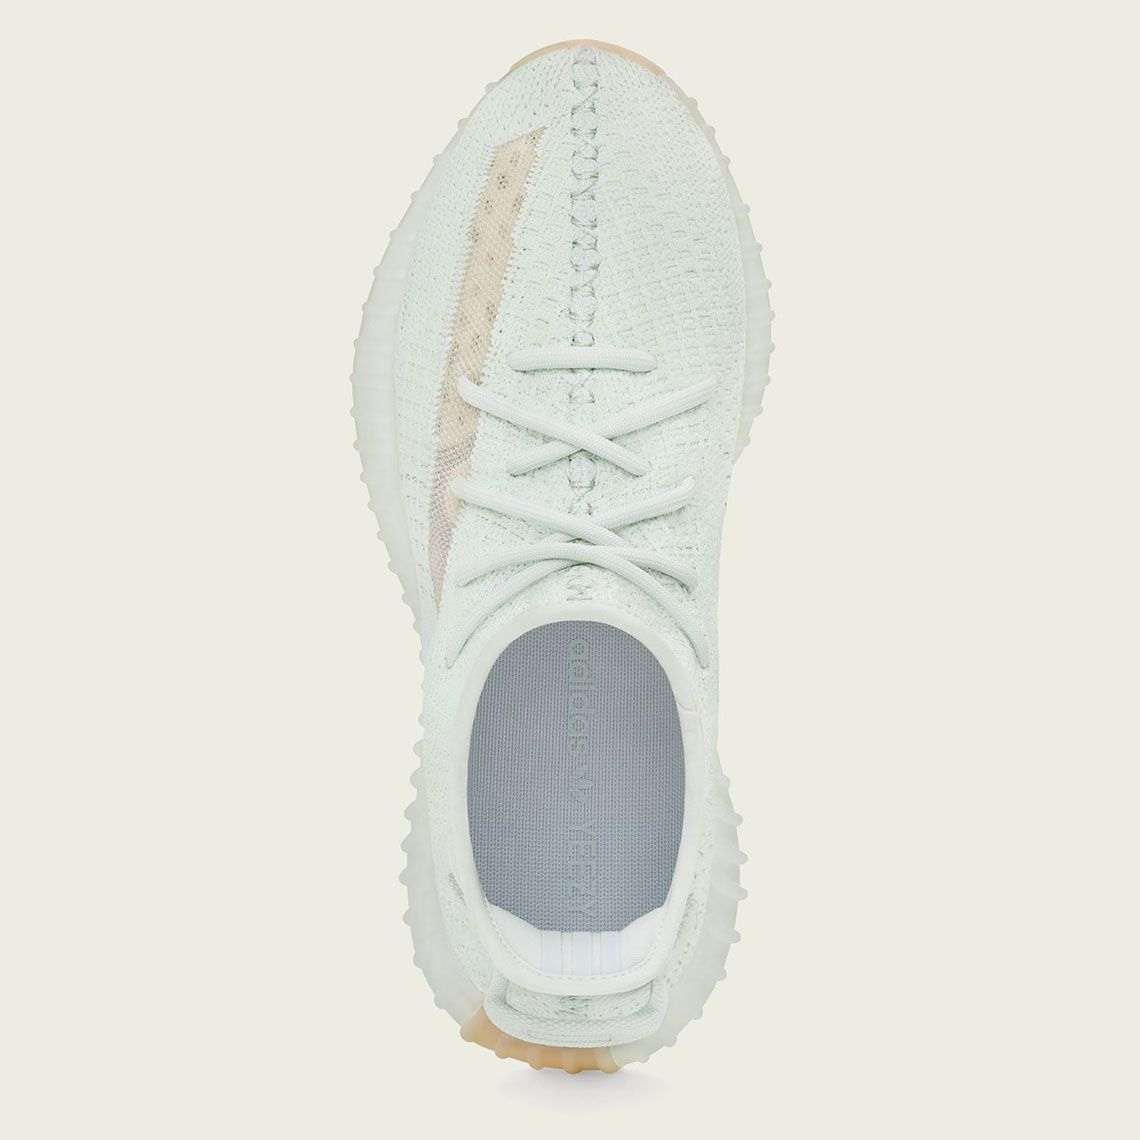 d29f38cde74 Official Images Of The adidas Yeezy Boost 350 v2 Hyperspace ...